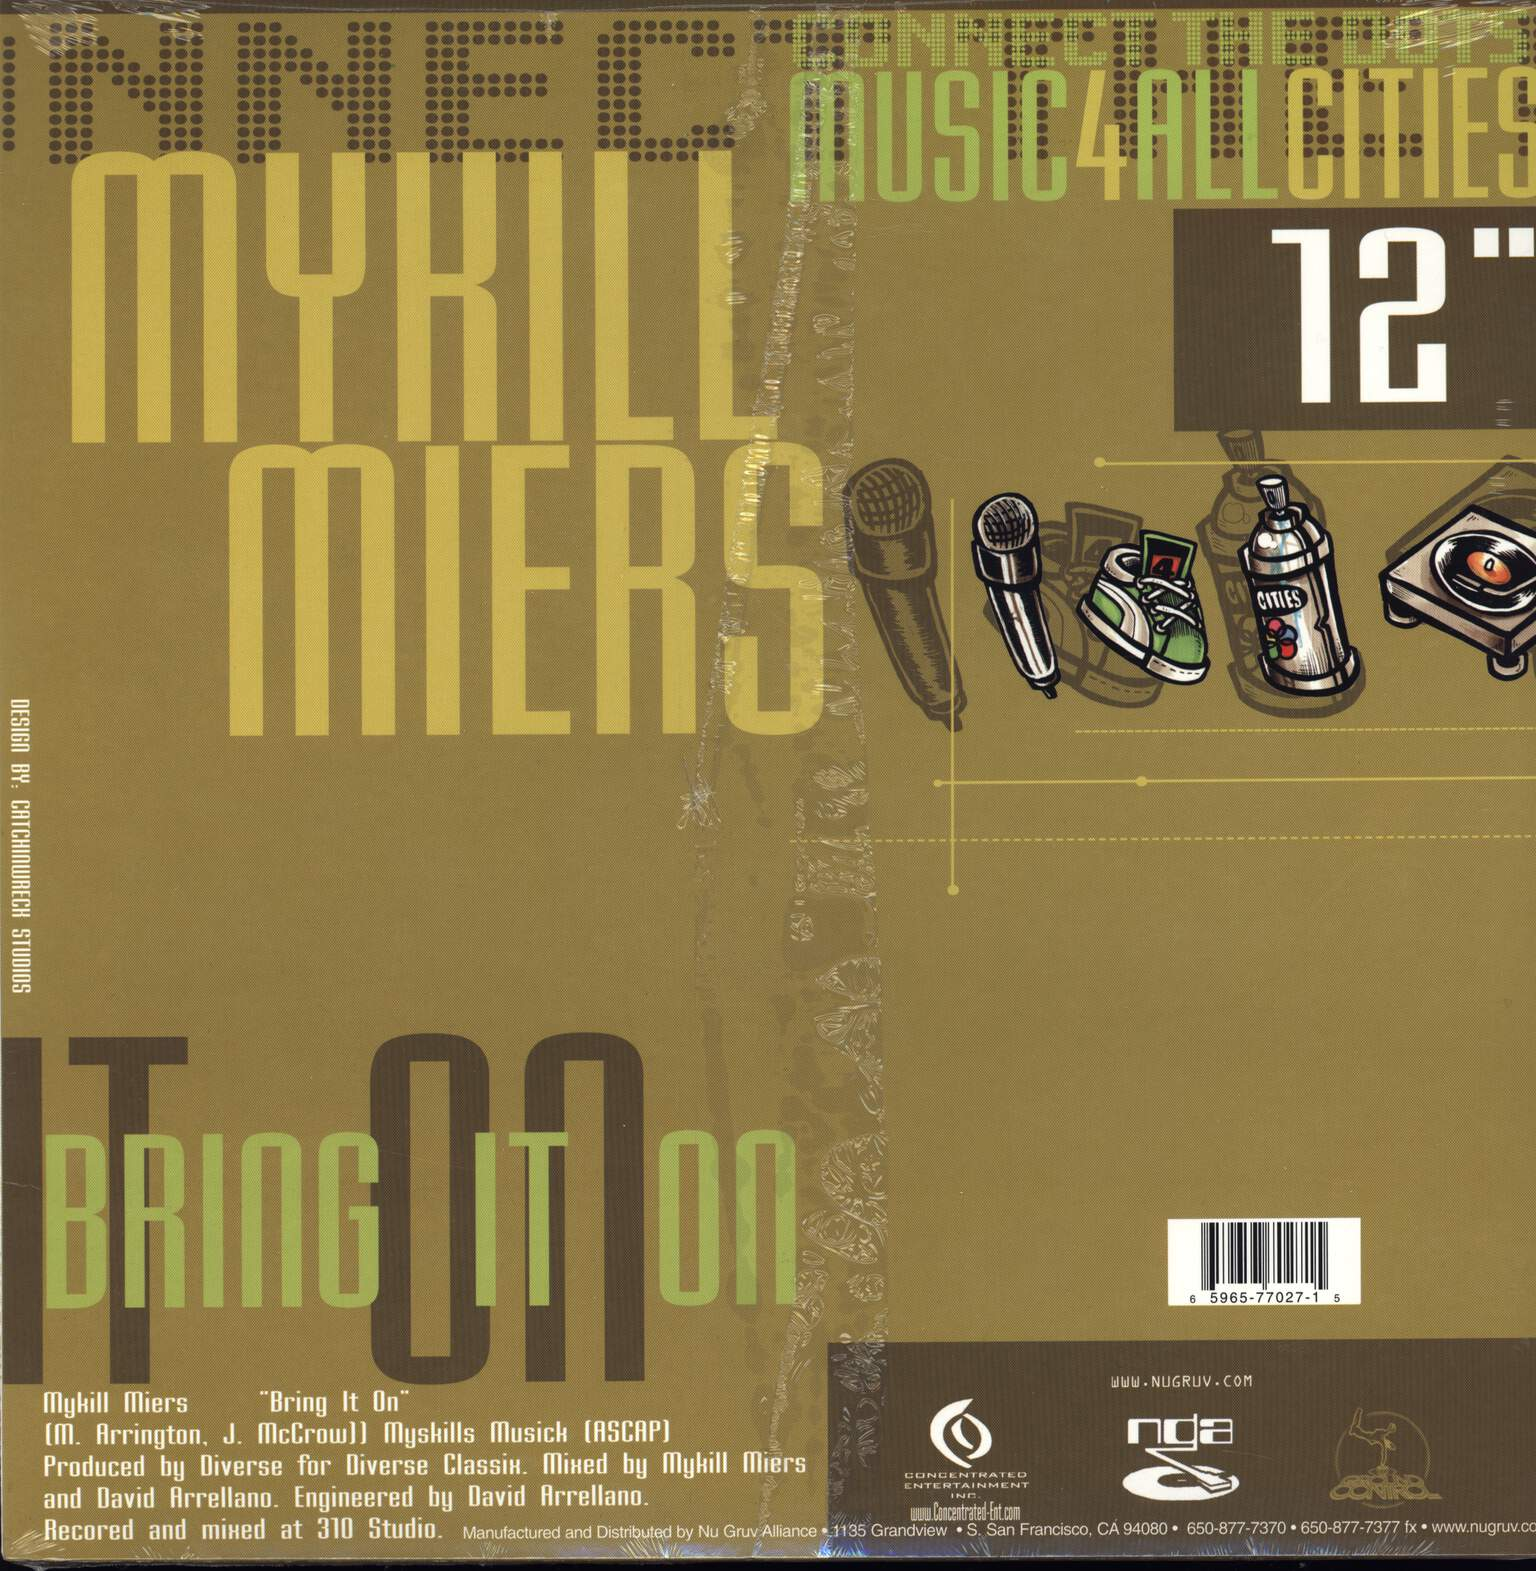 "Mykill Miers: Bring It On / Twist Of Lime / Run This, 12"" Maxi Single (Vinyl)"